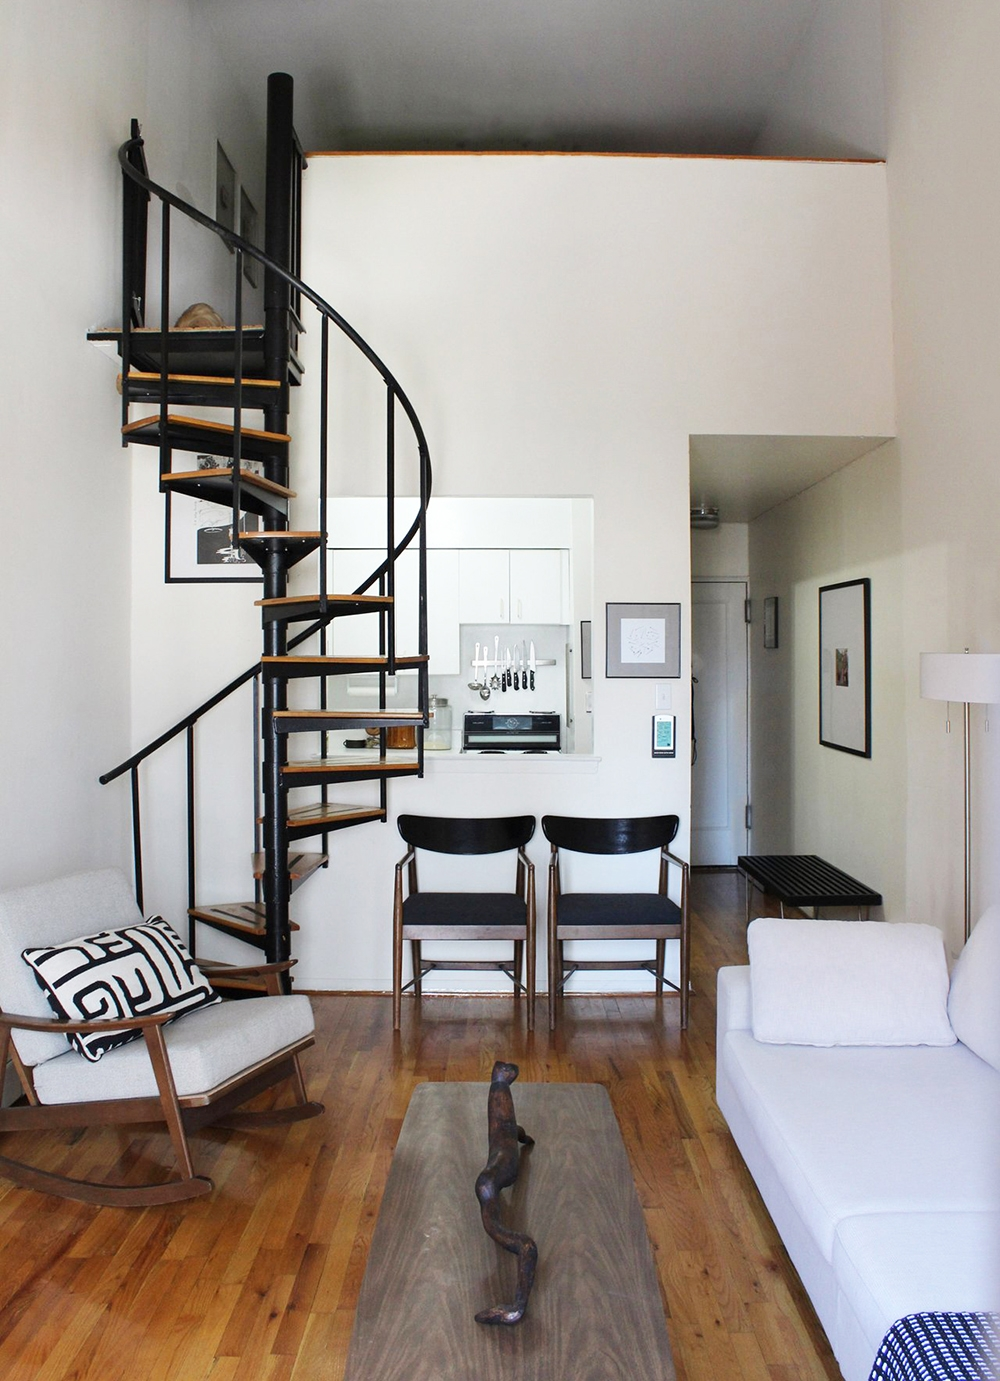 Space Saving Staircases Room For Tuesday Blog   Spiral Stairs For Small Spaces   Minimalist   Low Budget   Semi   Corner   Acrylic